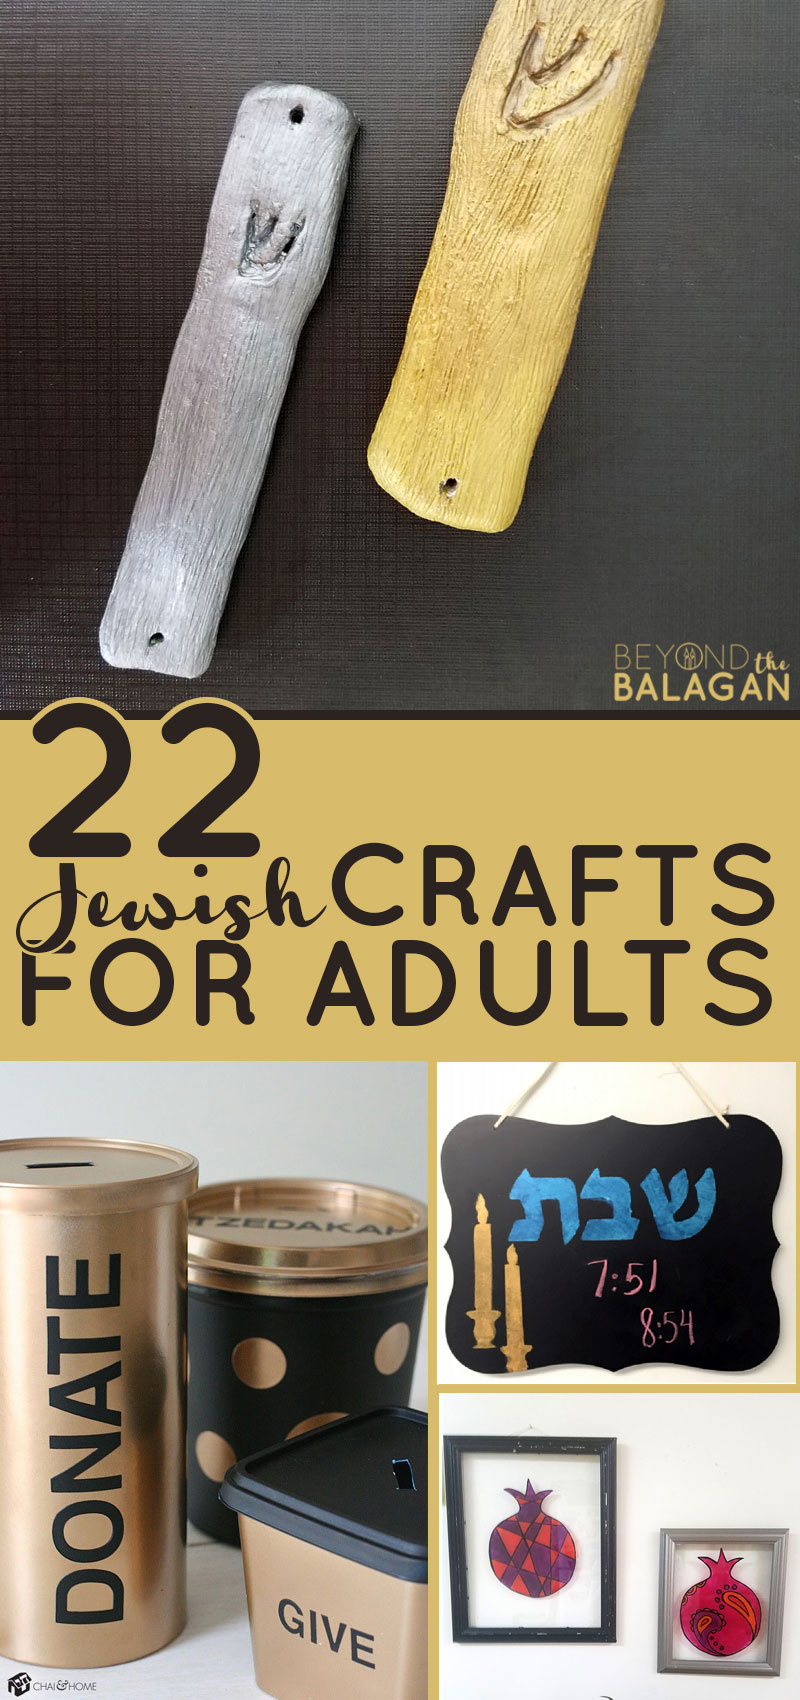 If you're looking for some cool Jewish crafts for adults, this list has everything you need - from DIY juidaica, to things Jewish moms can make for their kids, Jewish home decor, and Jewish holiday crafts...